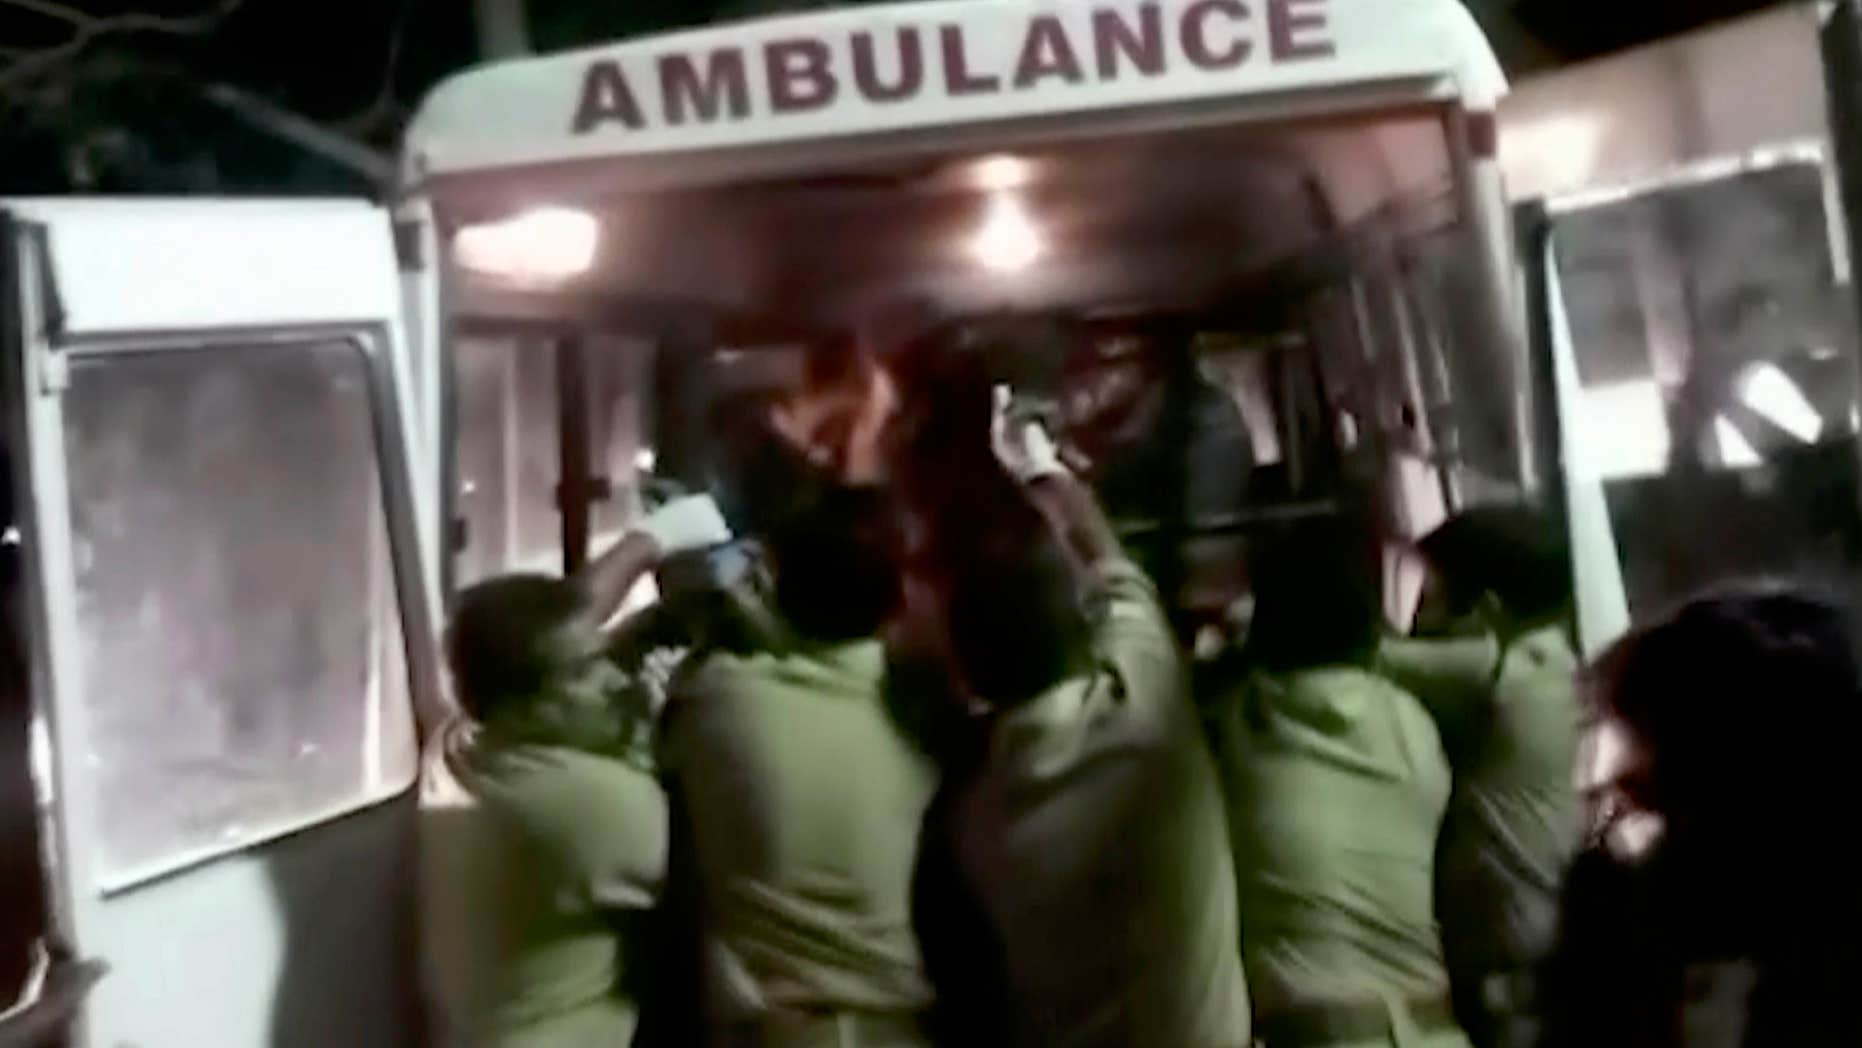 April 10, 2016: In this image made from video, officials put an injured person into an ambulance following a fire at a temple in Kollam, in the southern Indian state of Kerala.